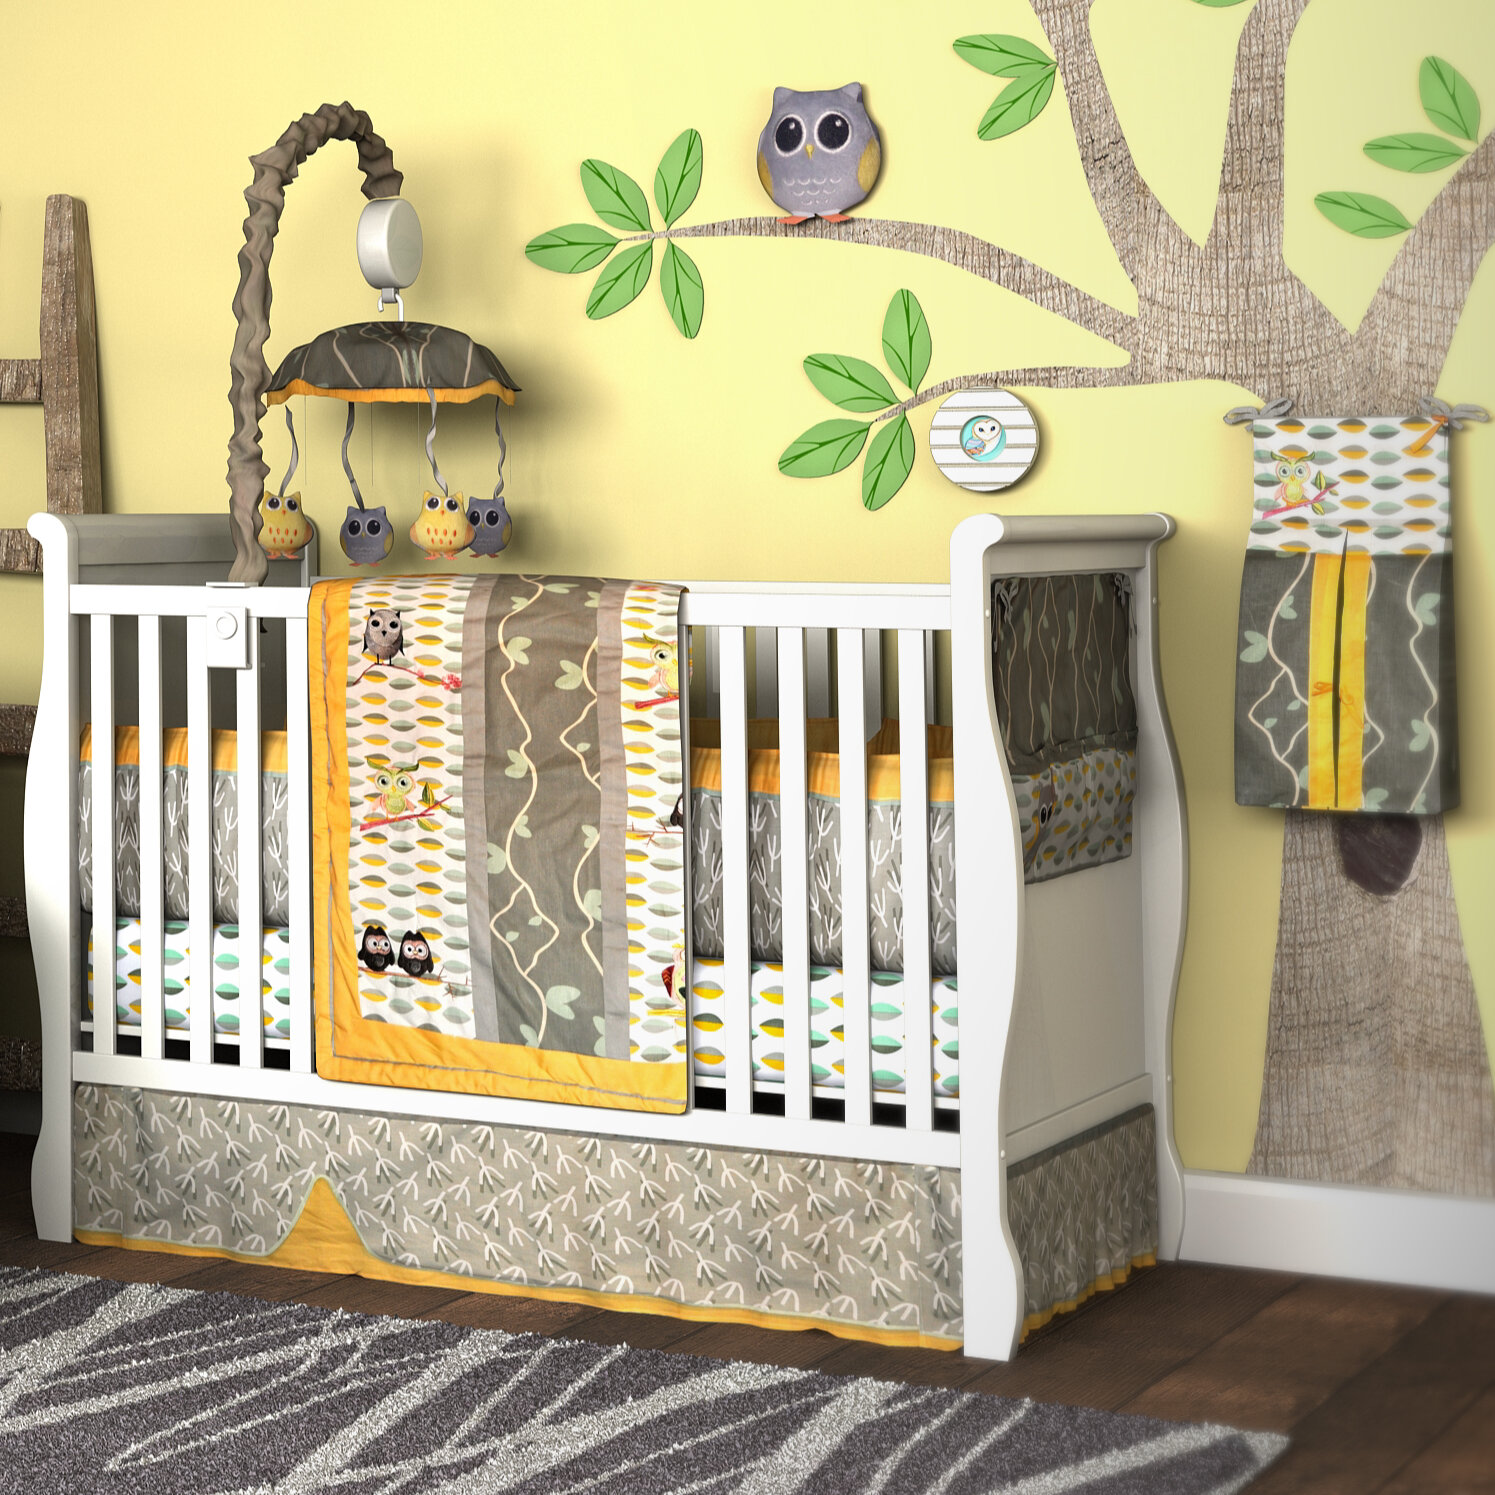 Leigh gender neutral 10pc owl baby crib bedding set grey yellow green - About Dk Leigh My Baby Hoo Owl 10 Piece Boutique Crib Bedding Set